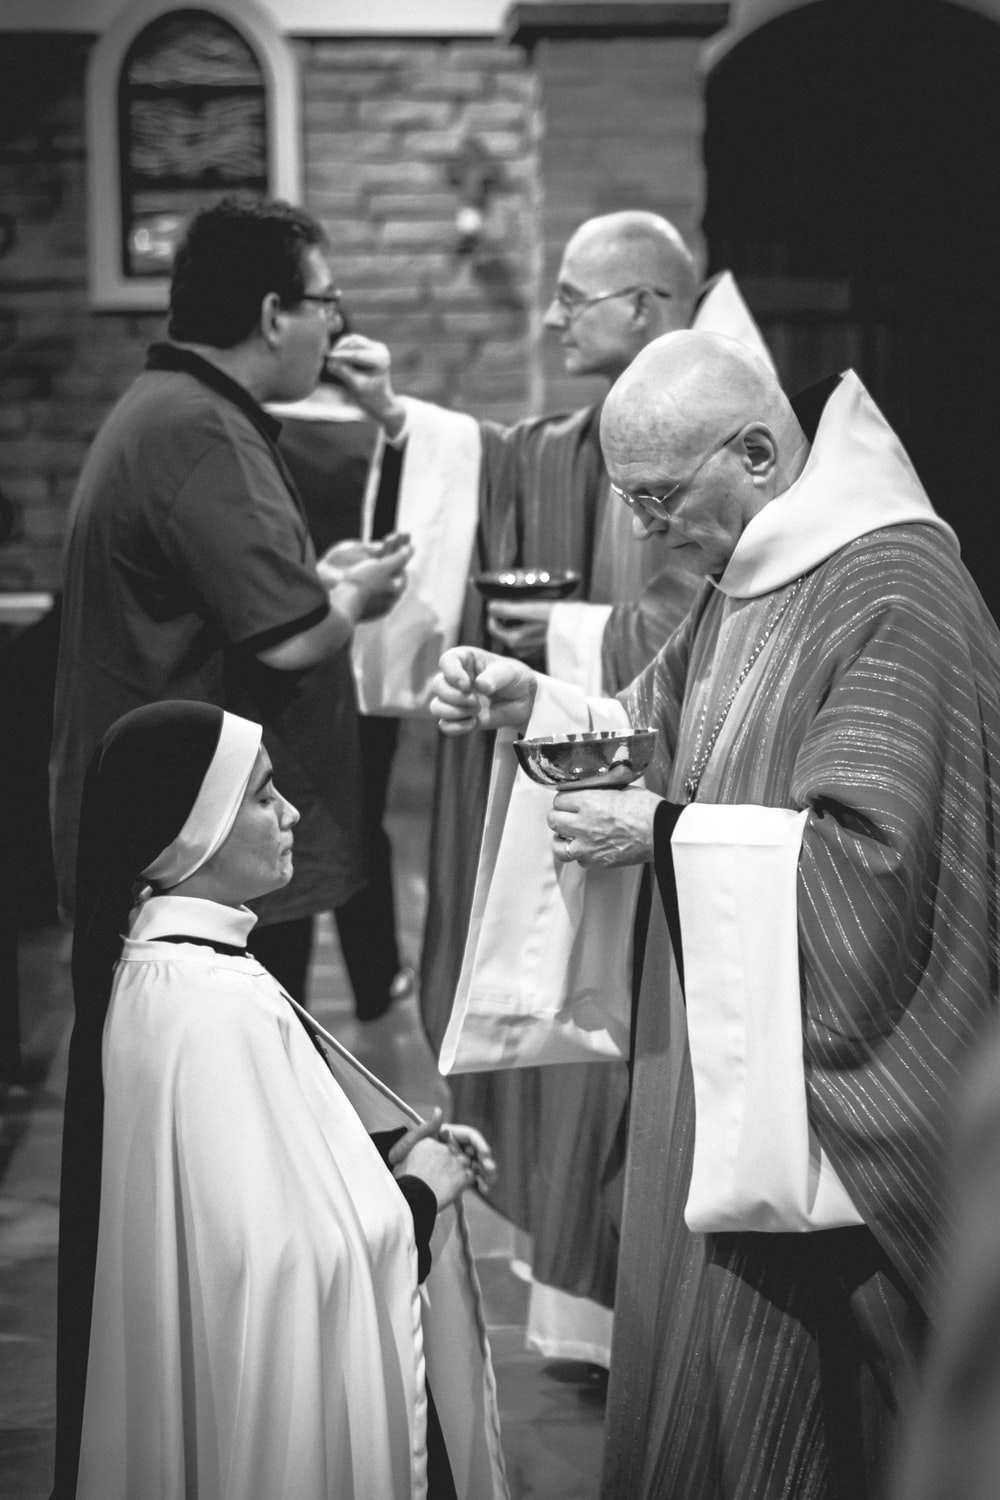 two priests giving Eucharist